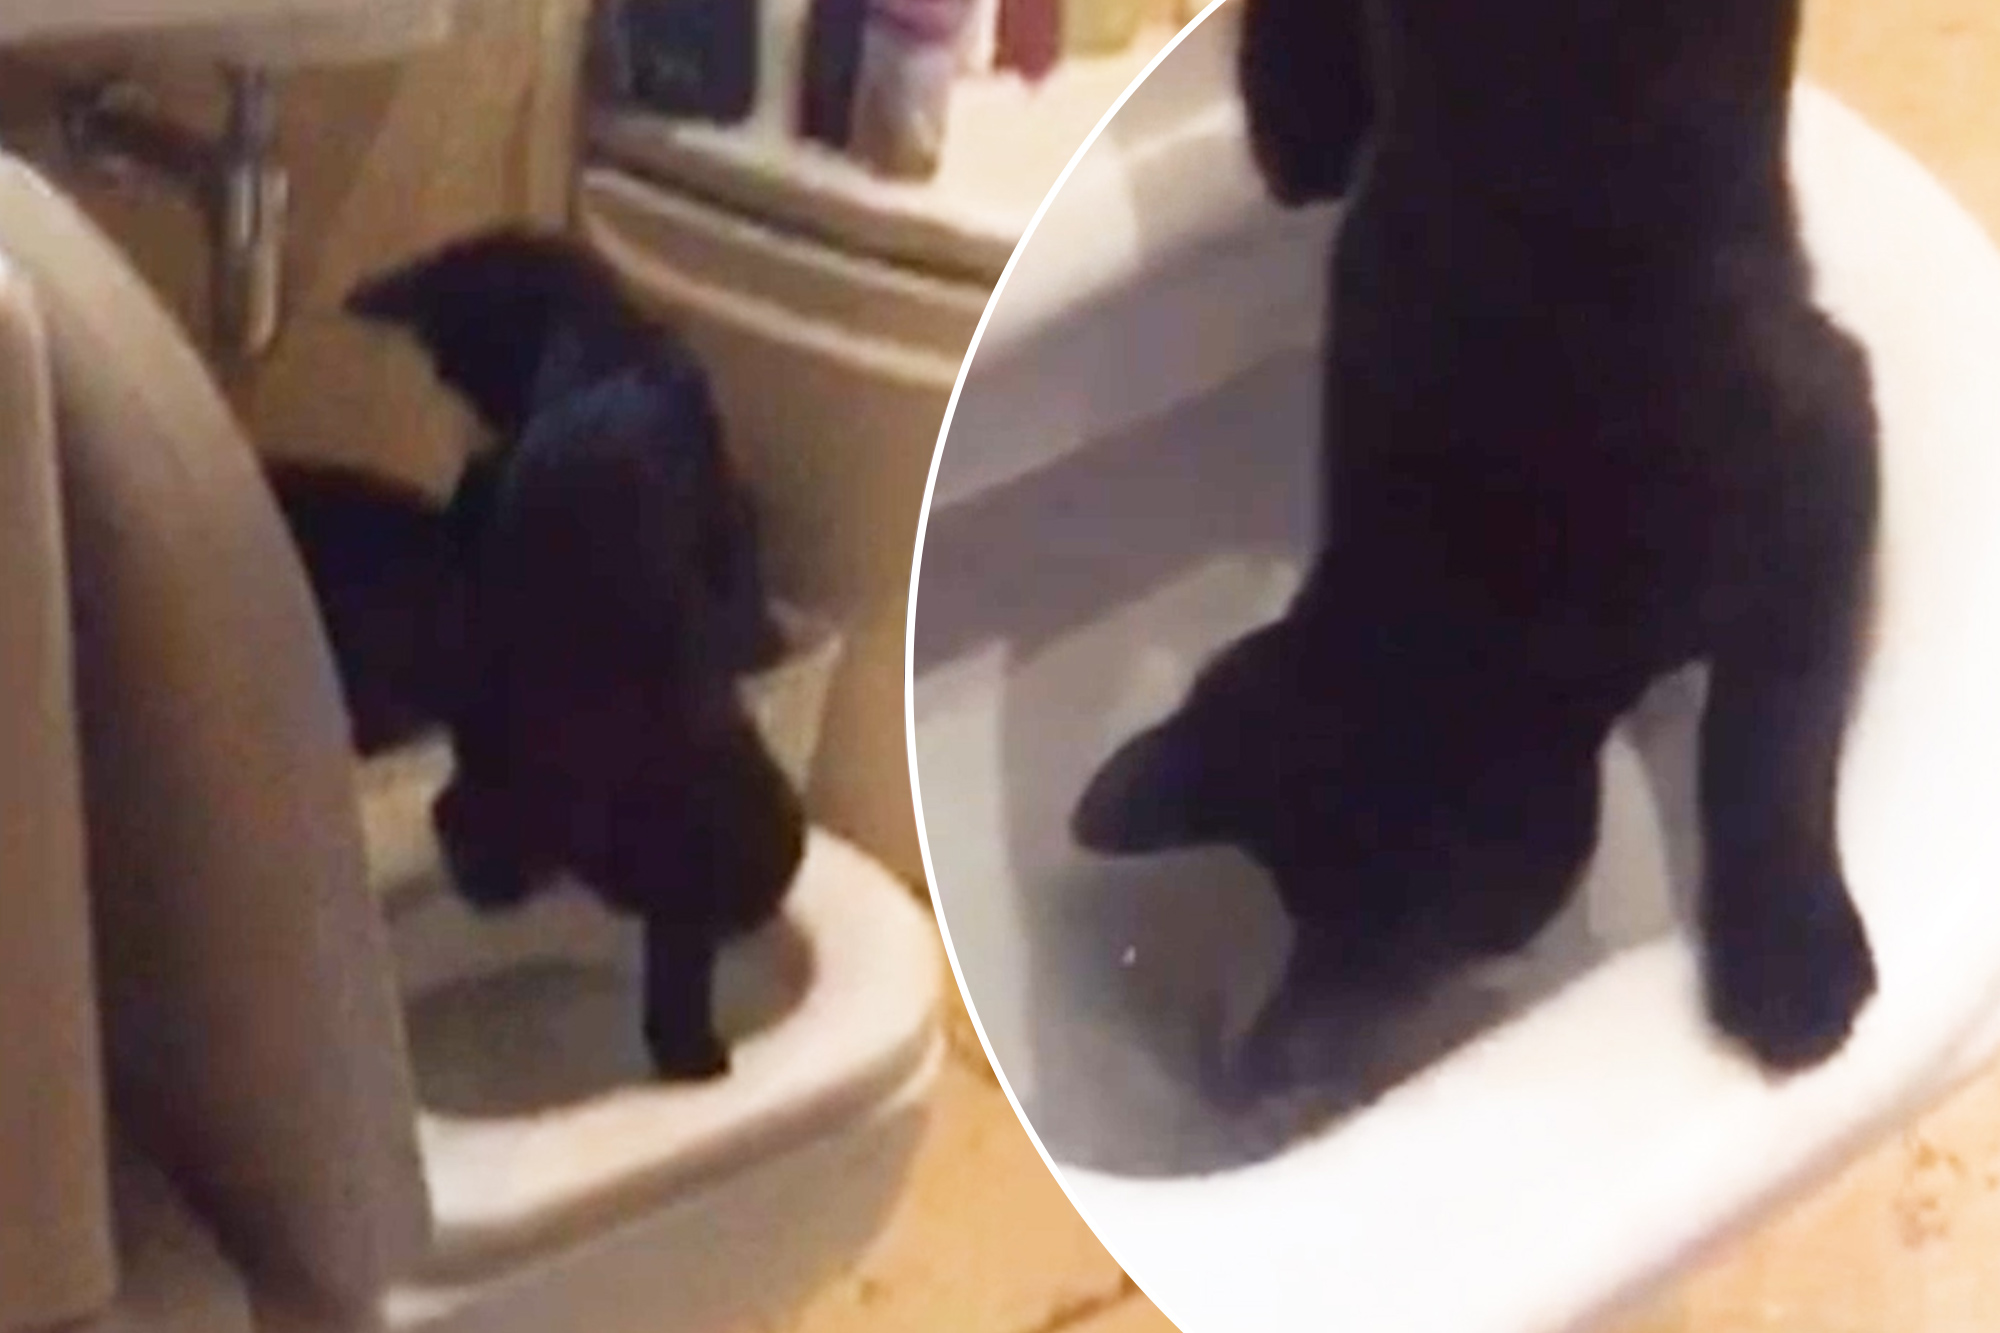 Rescue kitty uses bathroom like a person